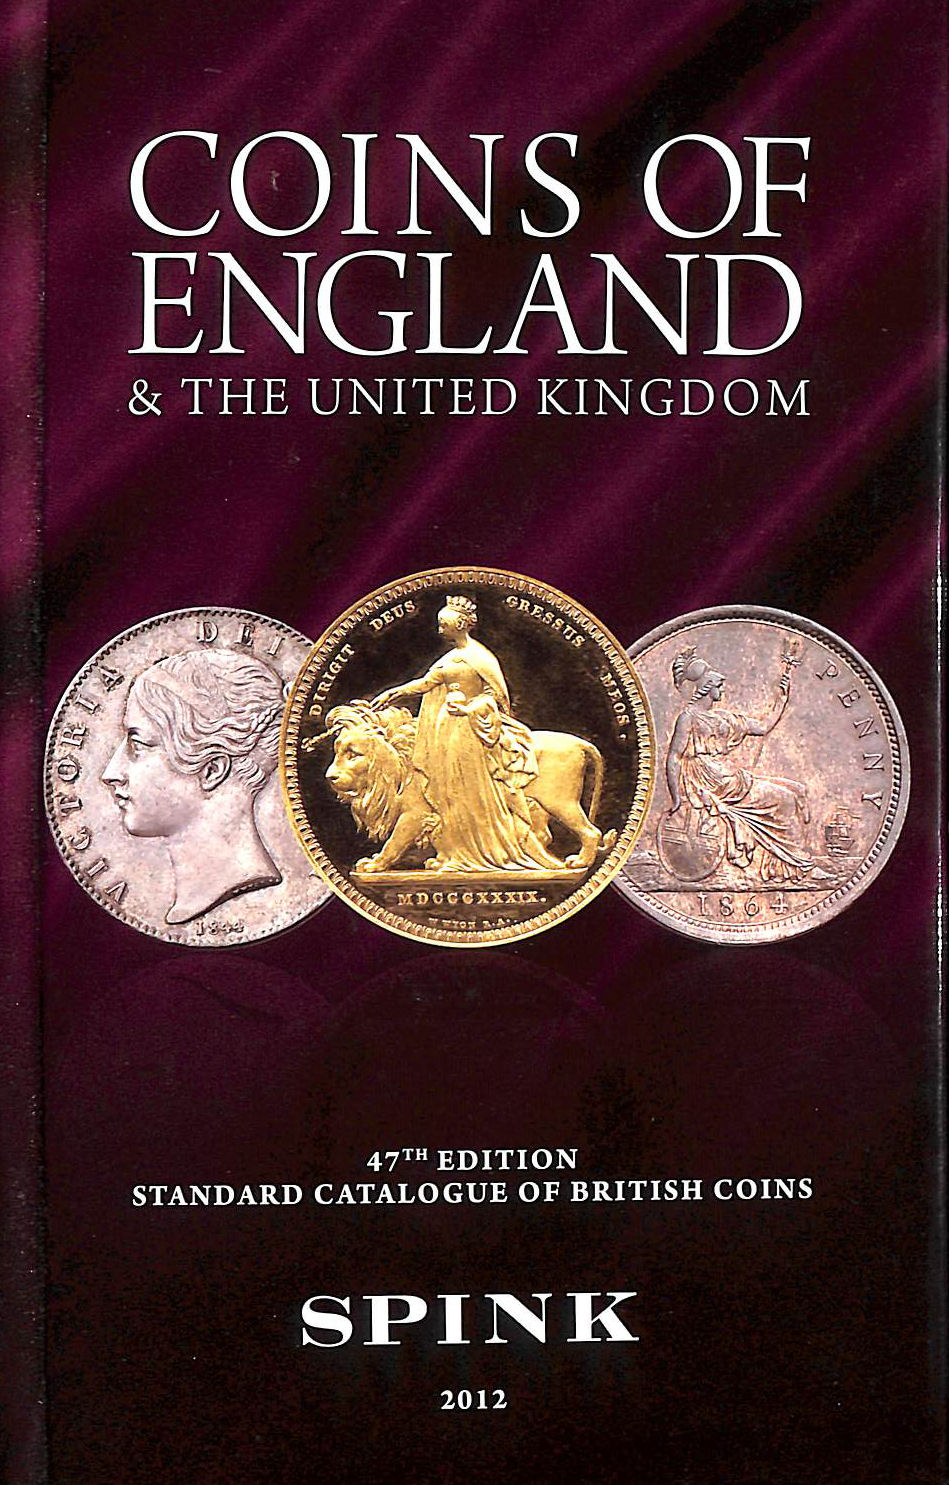 Image for Coins of England and the United Kingdom: Standard Catalogue of British Coins